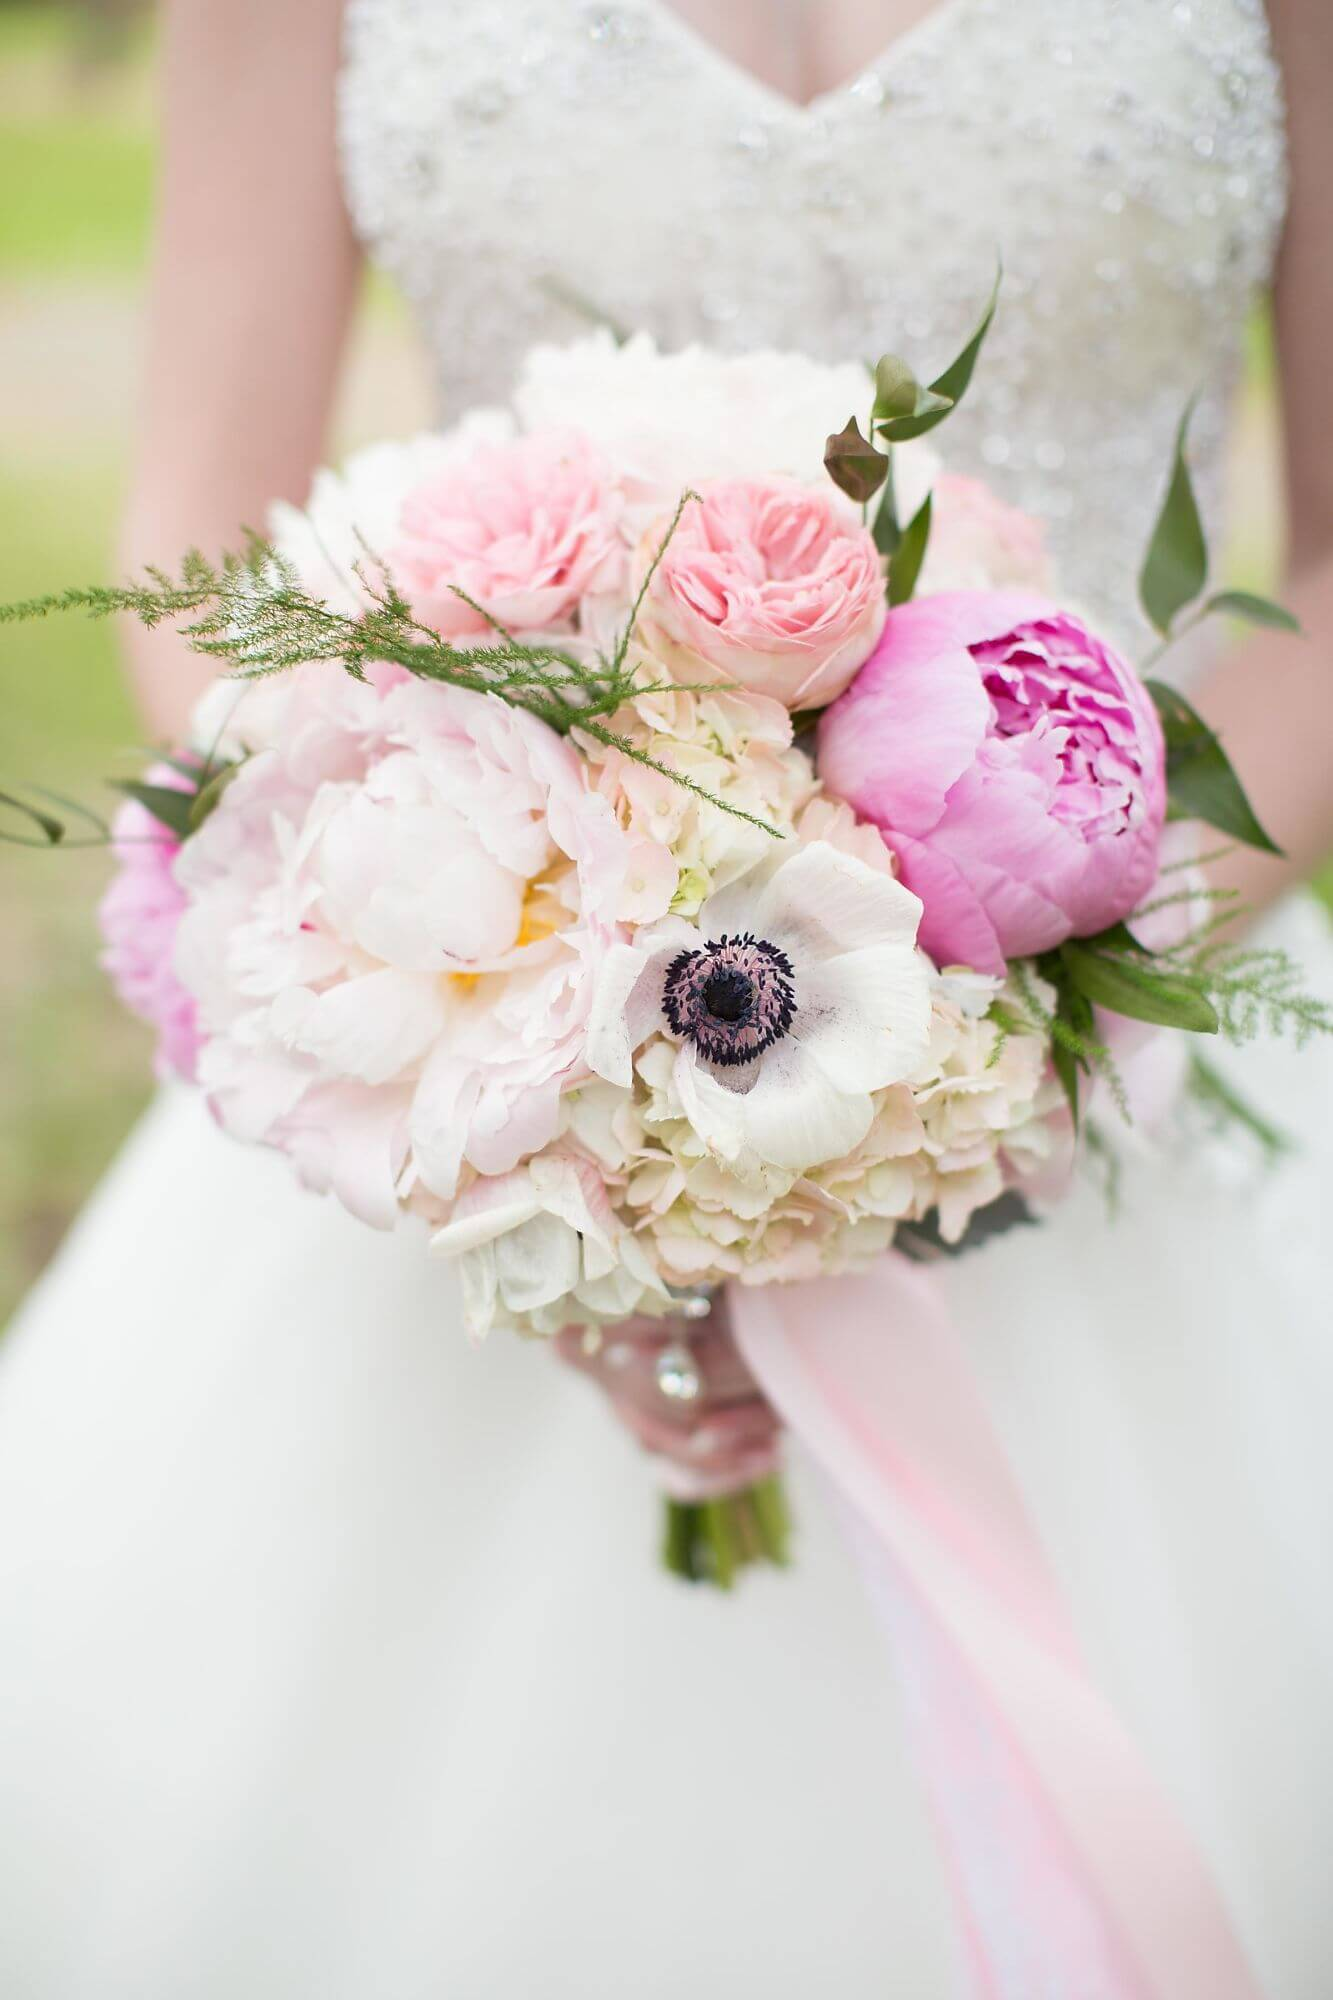 Photo torso closeup of bride in wedding dress holding white and blush pink bouquet with peonies - Niagara wedding - Historia Wedding and Event Planning